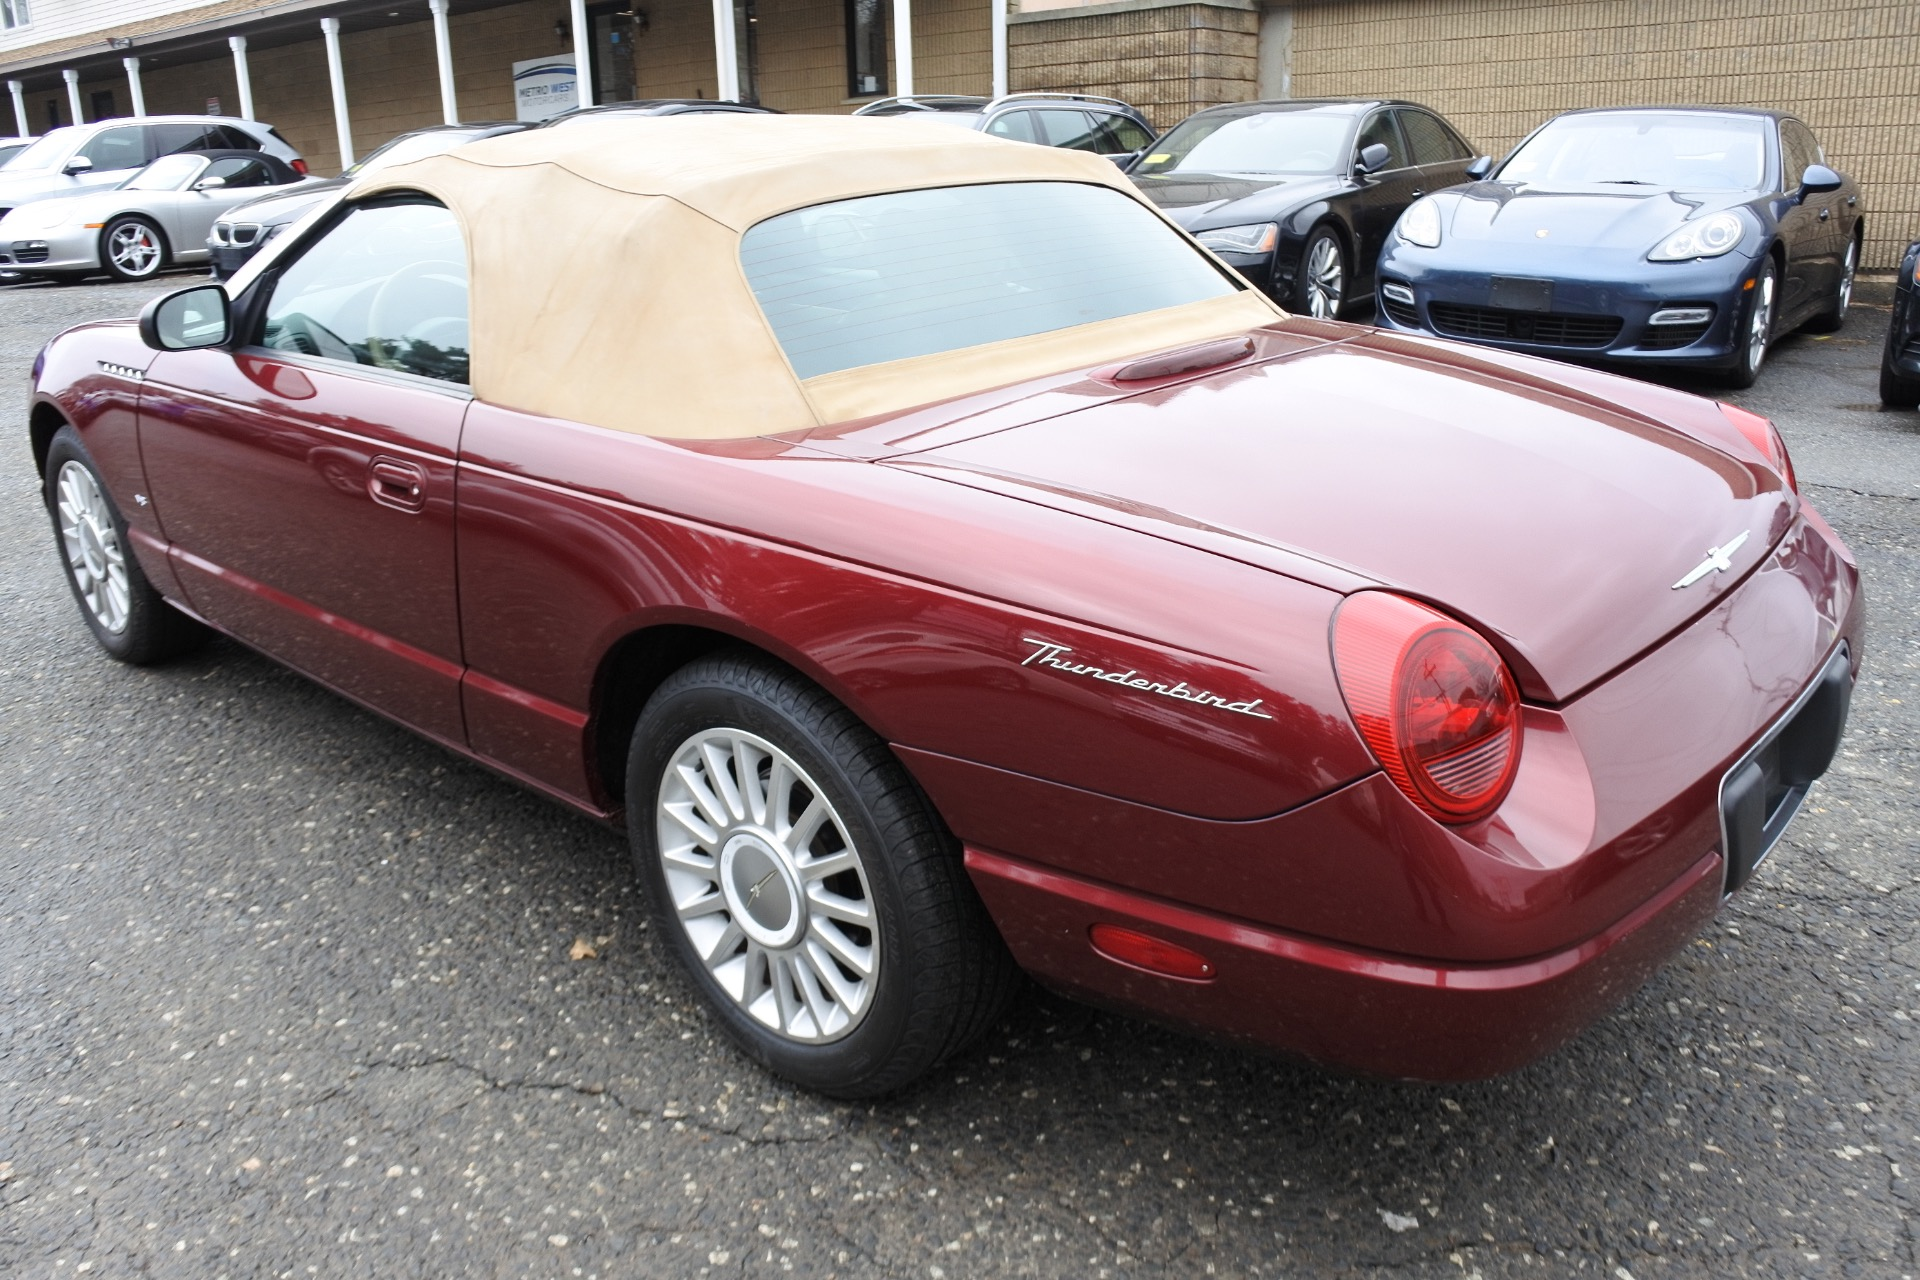 Used 2004 Ford Thunderbird 2dr Convertible Premium Used 2004 Ford Thunderbird 2dr Convertible Premium for sale  at Metro West Motorcars LLC in Shrewsbury MA 22